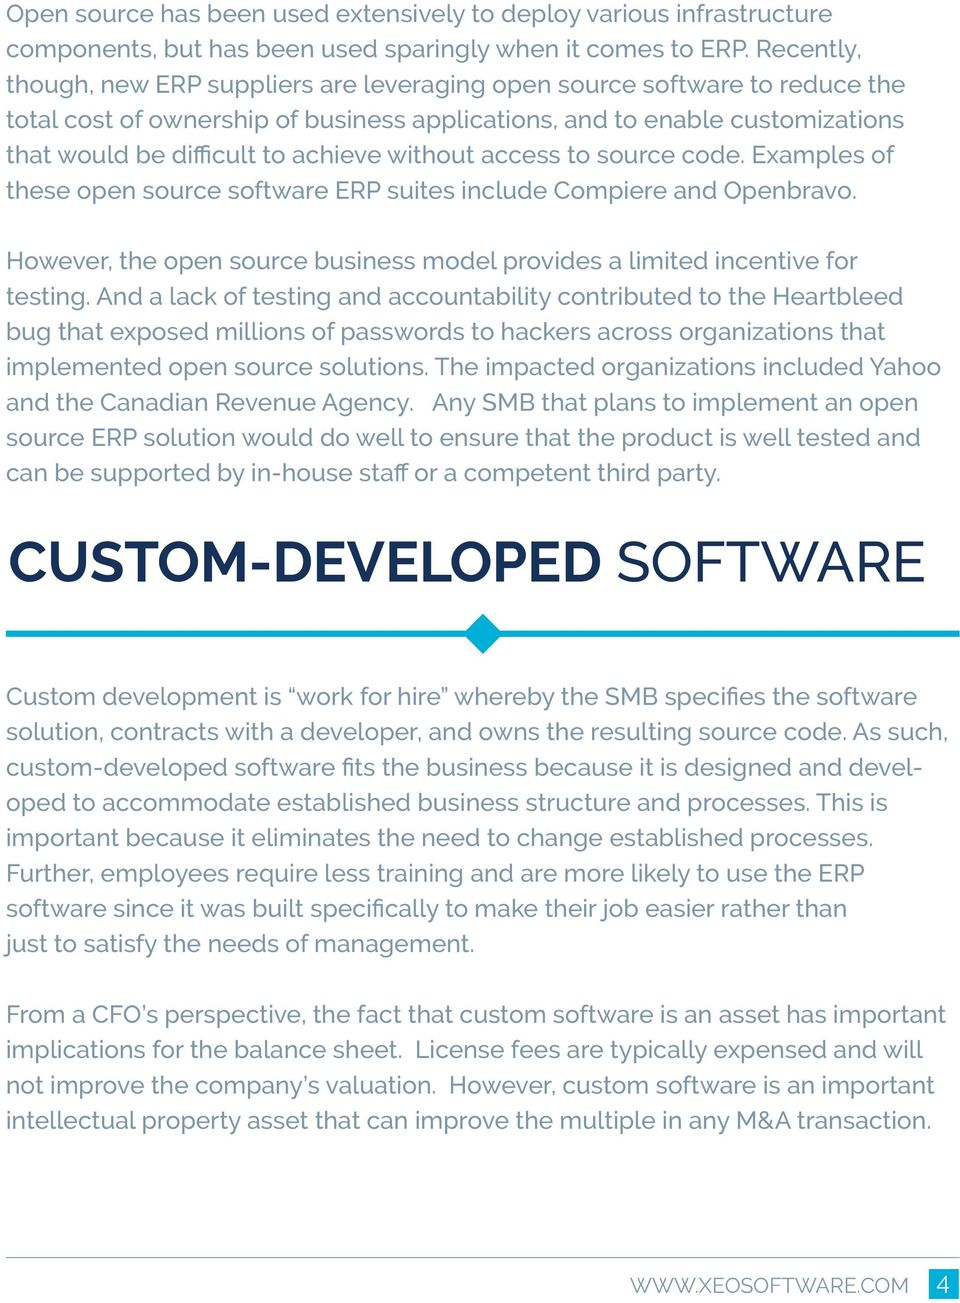 without access to source code. Examples of these open source software ERP suites include Compiere and Openbravo. However, the open source business model provides a limited incentive for testing.